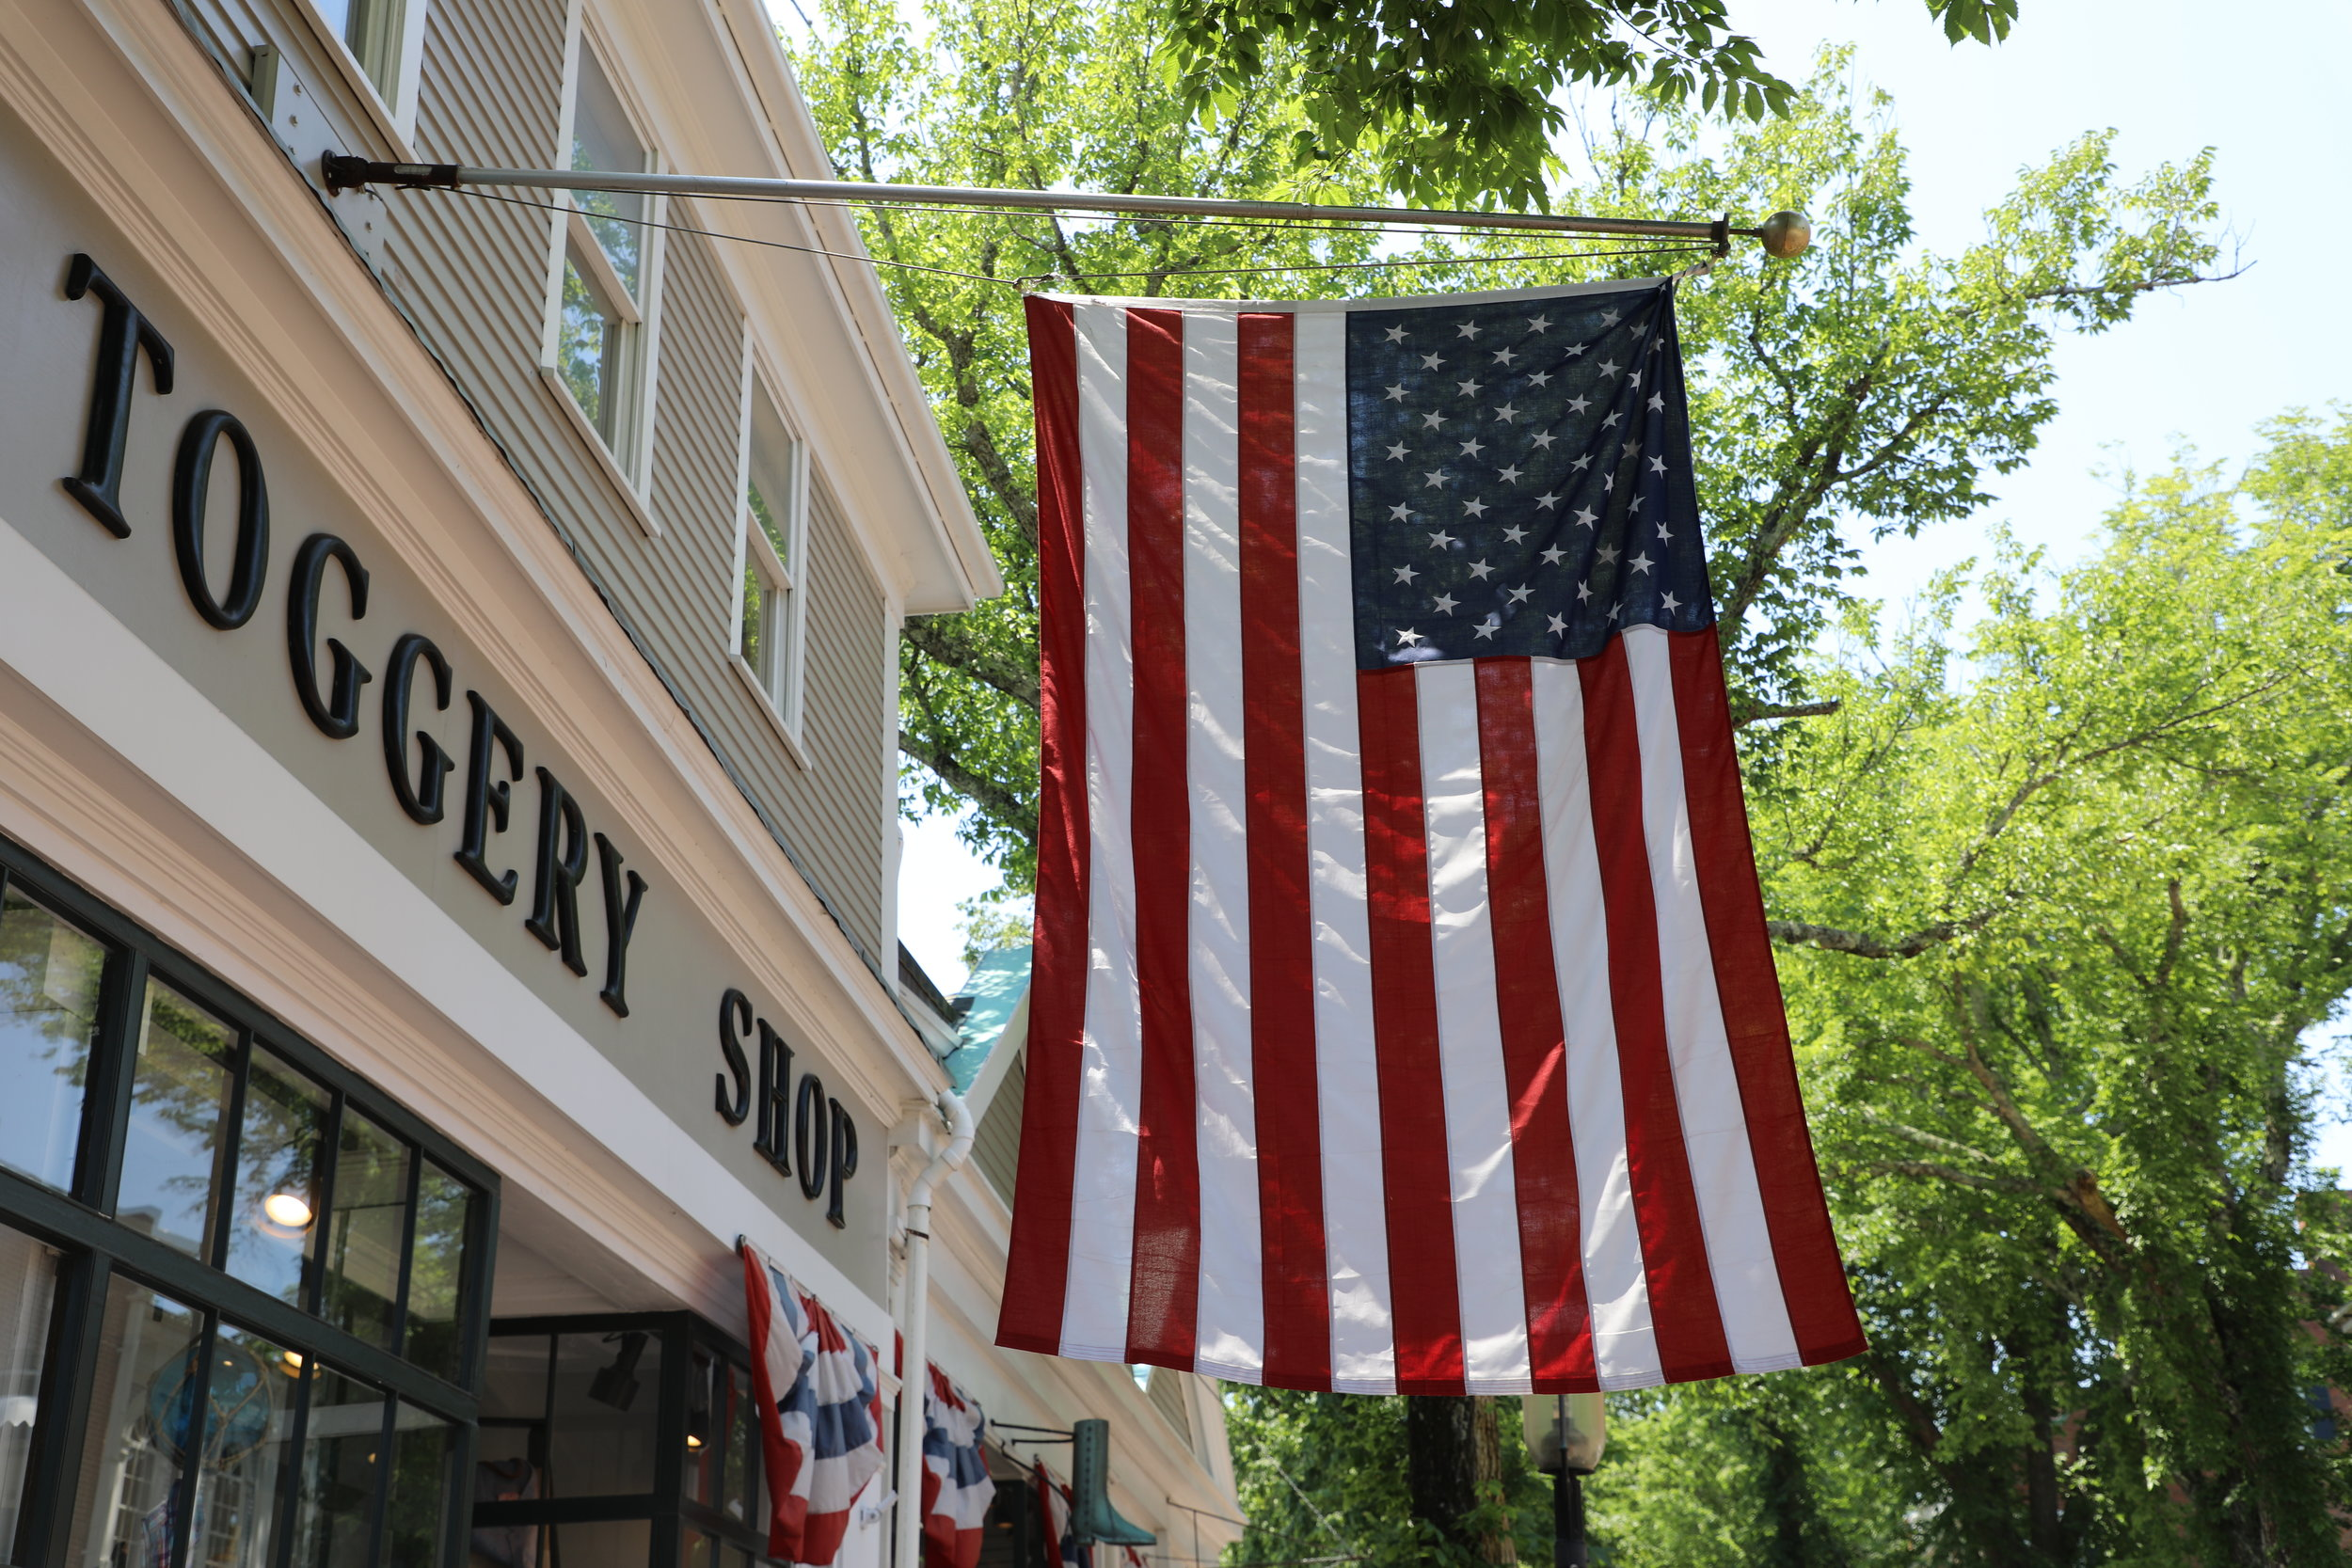 In town festivities. Let the celebration begin!!! The American Flag at Murray's. Main Street. ©betsygibsondesign